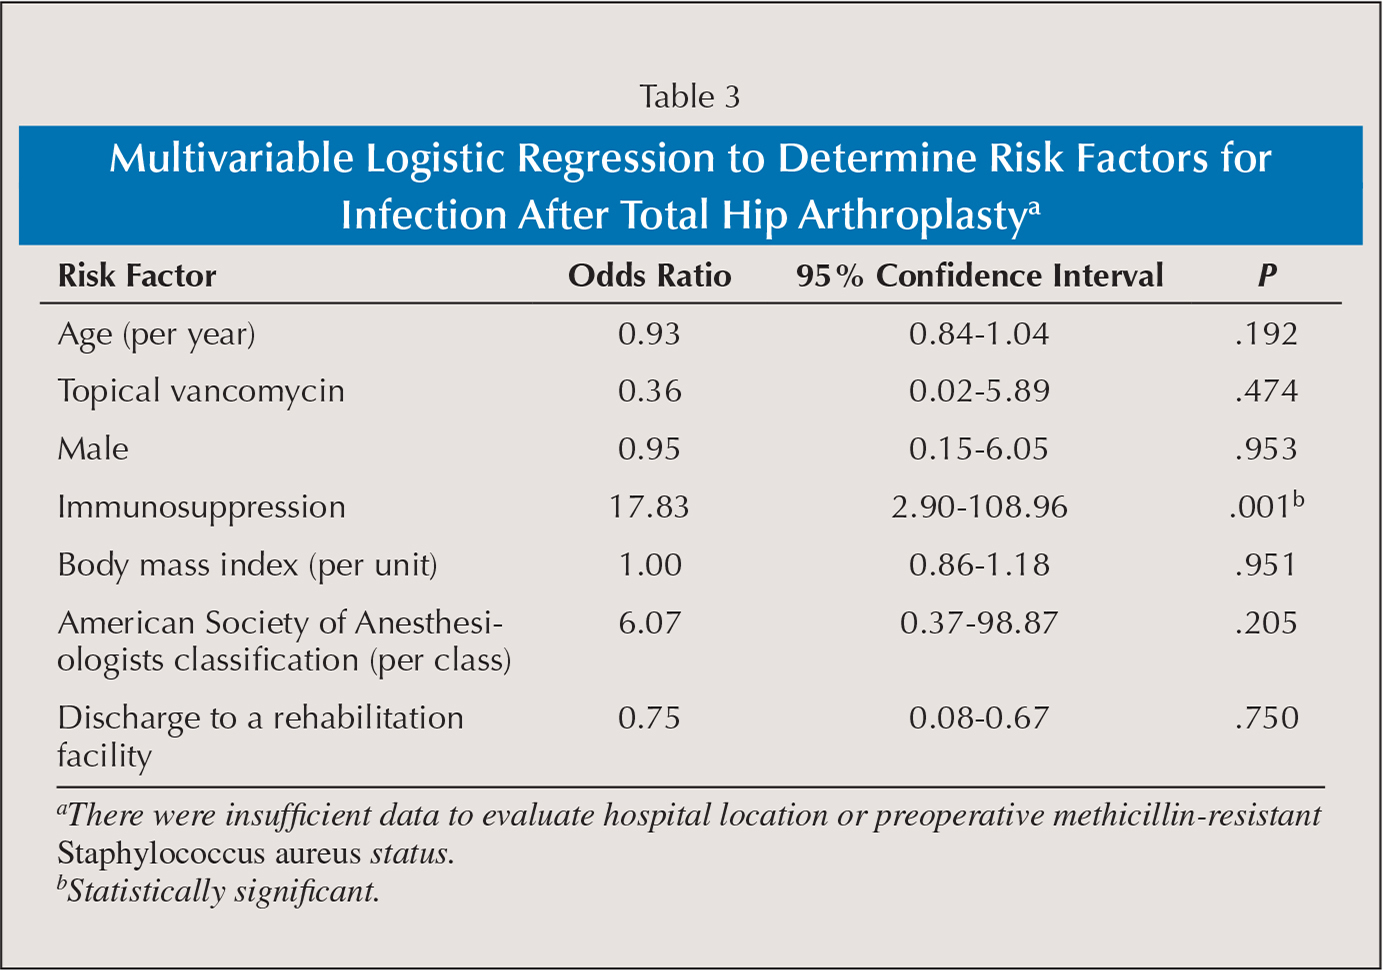 Multivariable Logistic Regression to Determine Risk Factors for Infection After Total Hip Arthroplastya